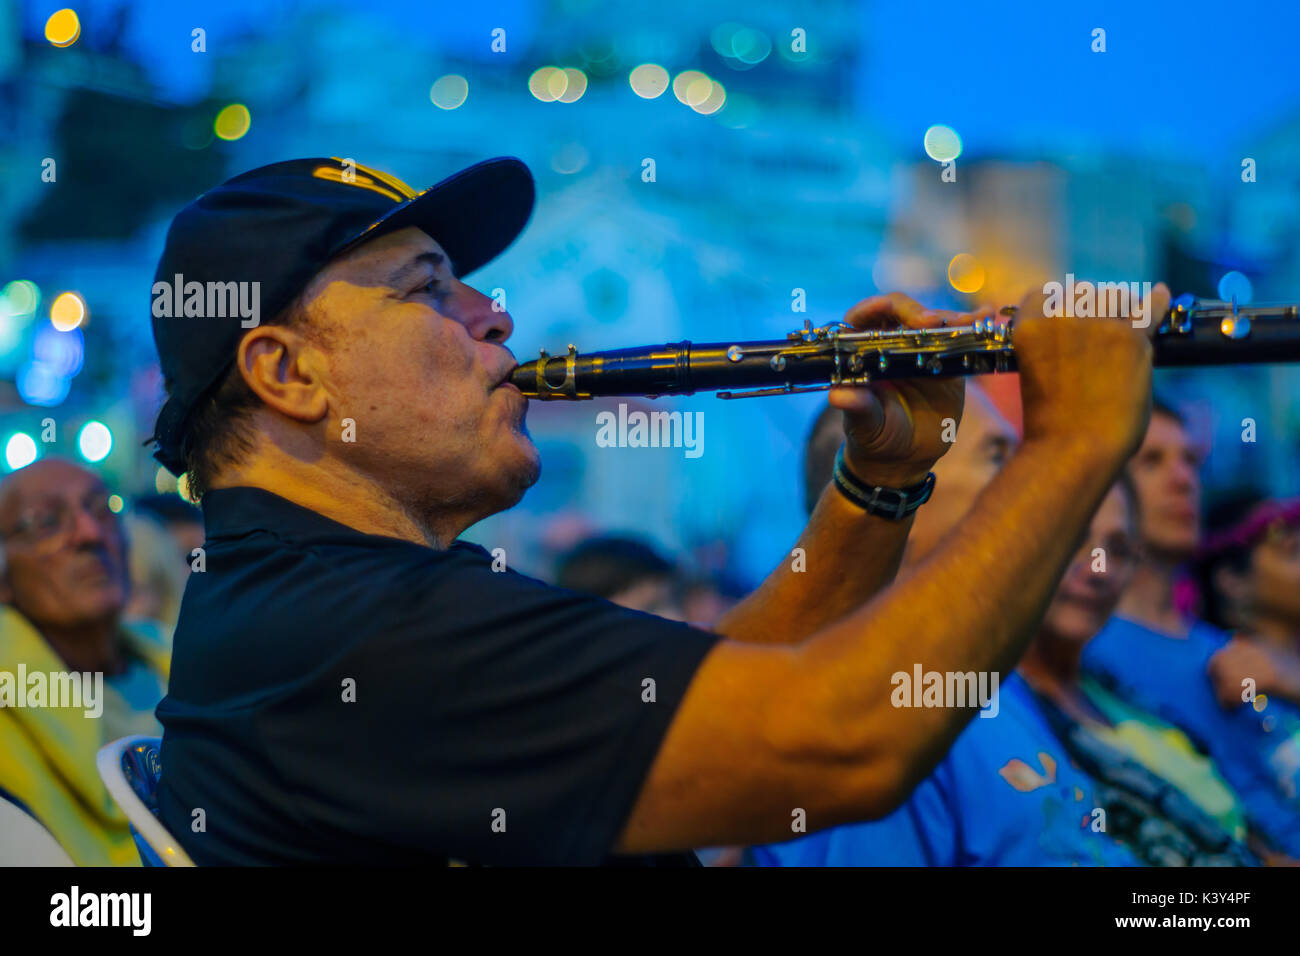 SAFED, ISRAEL - AUGUST 23, 2017: A man in the crowd play Clarinet at the Klezmer Festival in Safed (Tzfat), Israel. Stock Photo